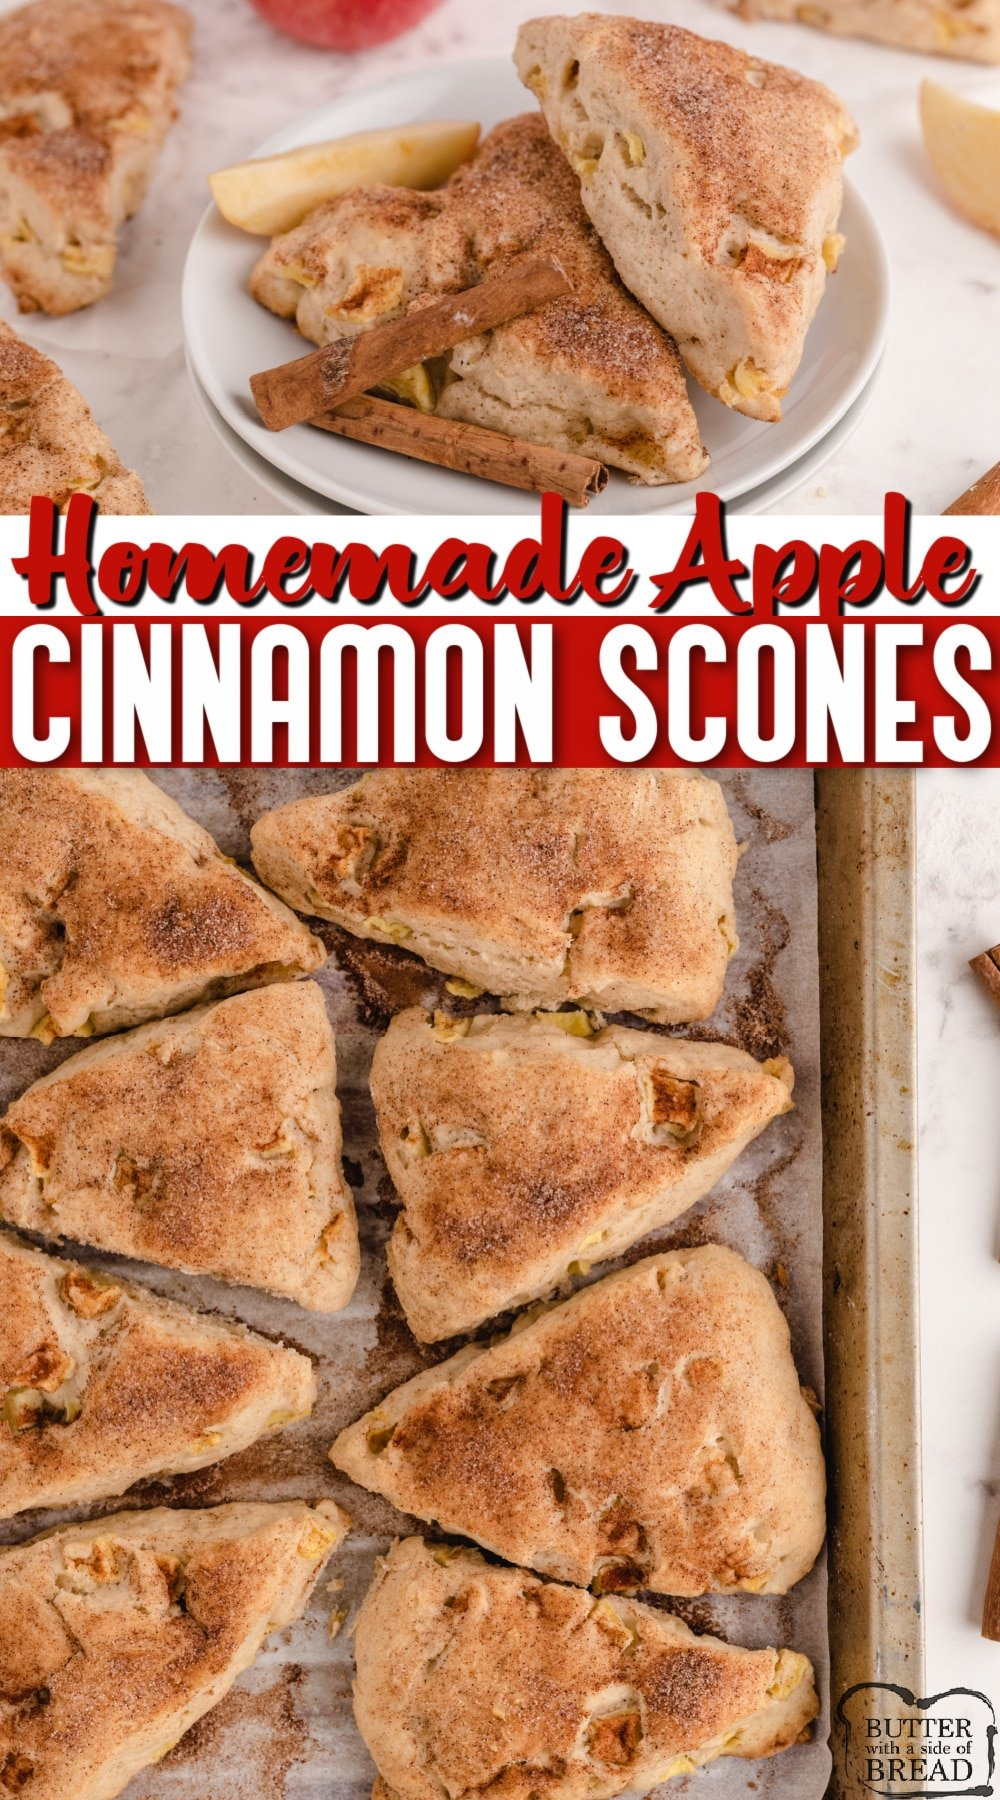 Apple Cinnamon Scones made with fresh apples and topped with cinnamon and sugar. Delicious homemade scone recipe that is great for breakfast or a sweet treat!